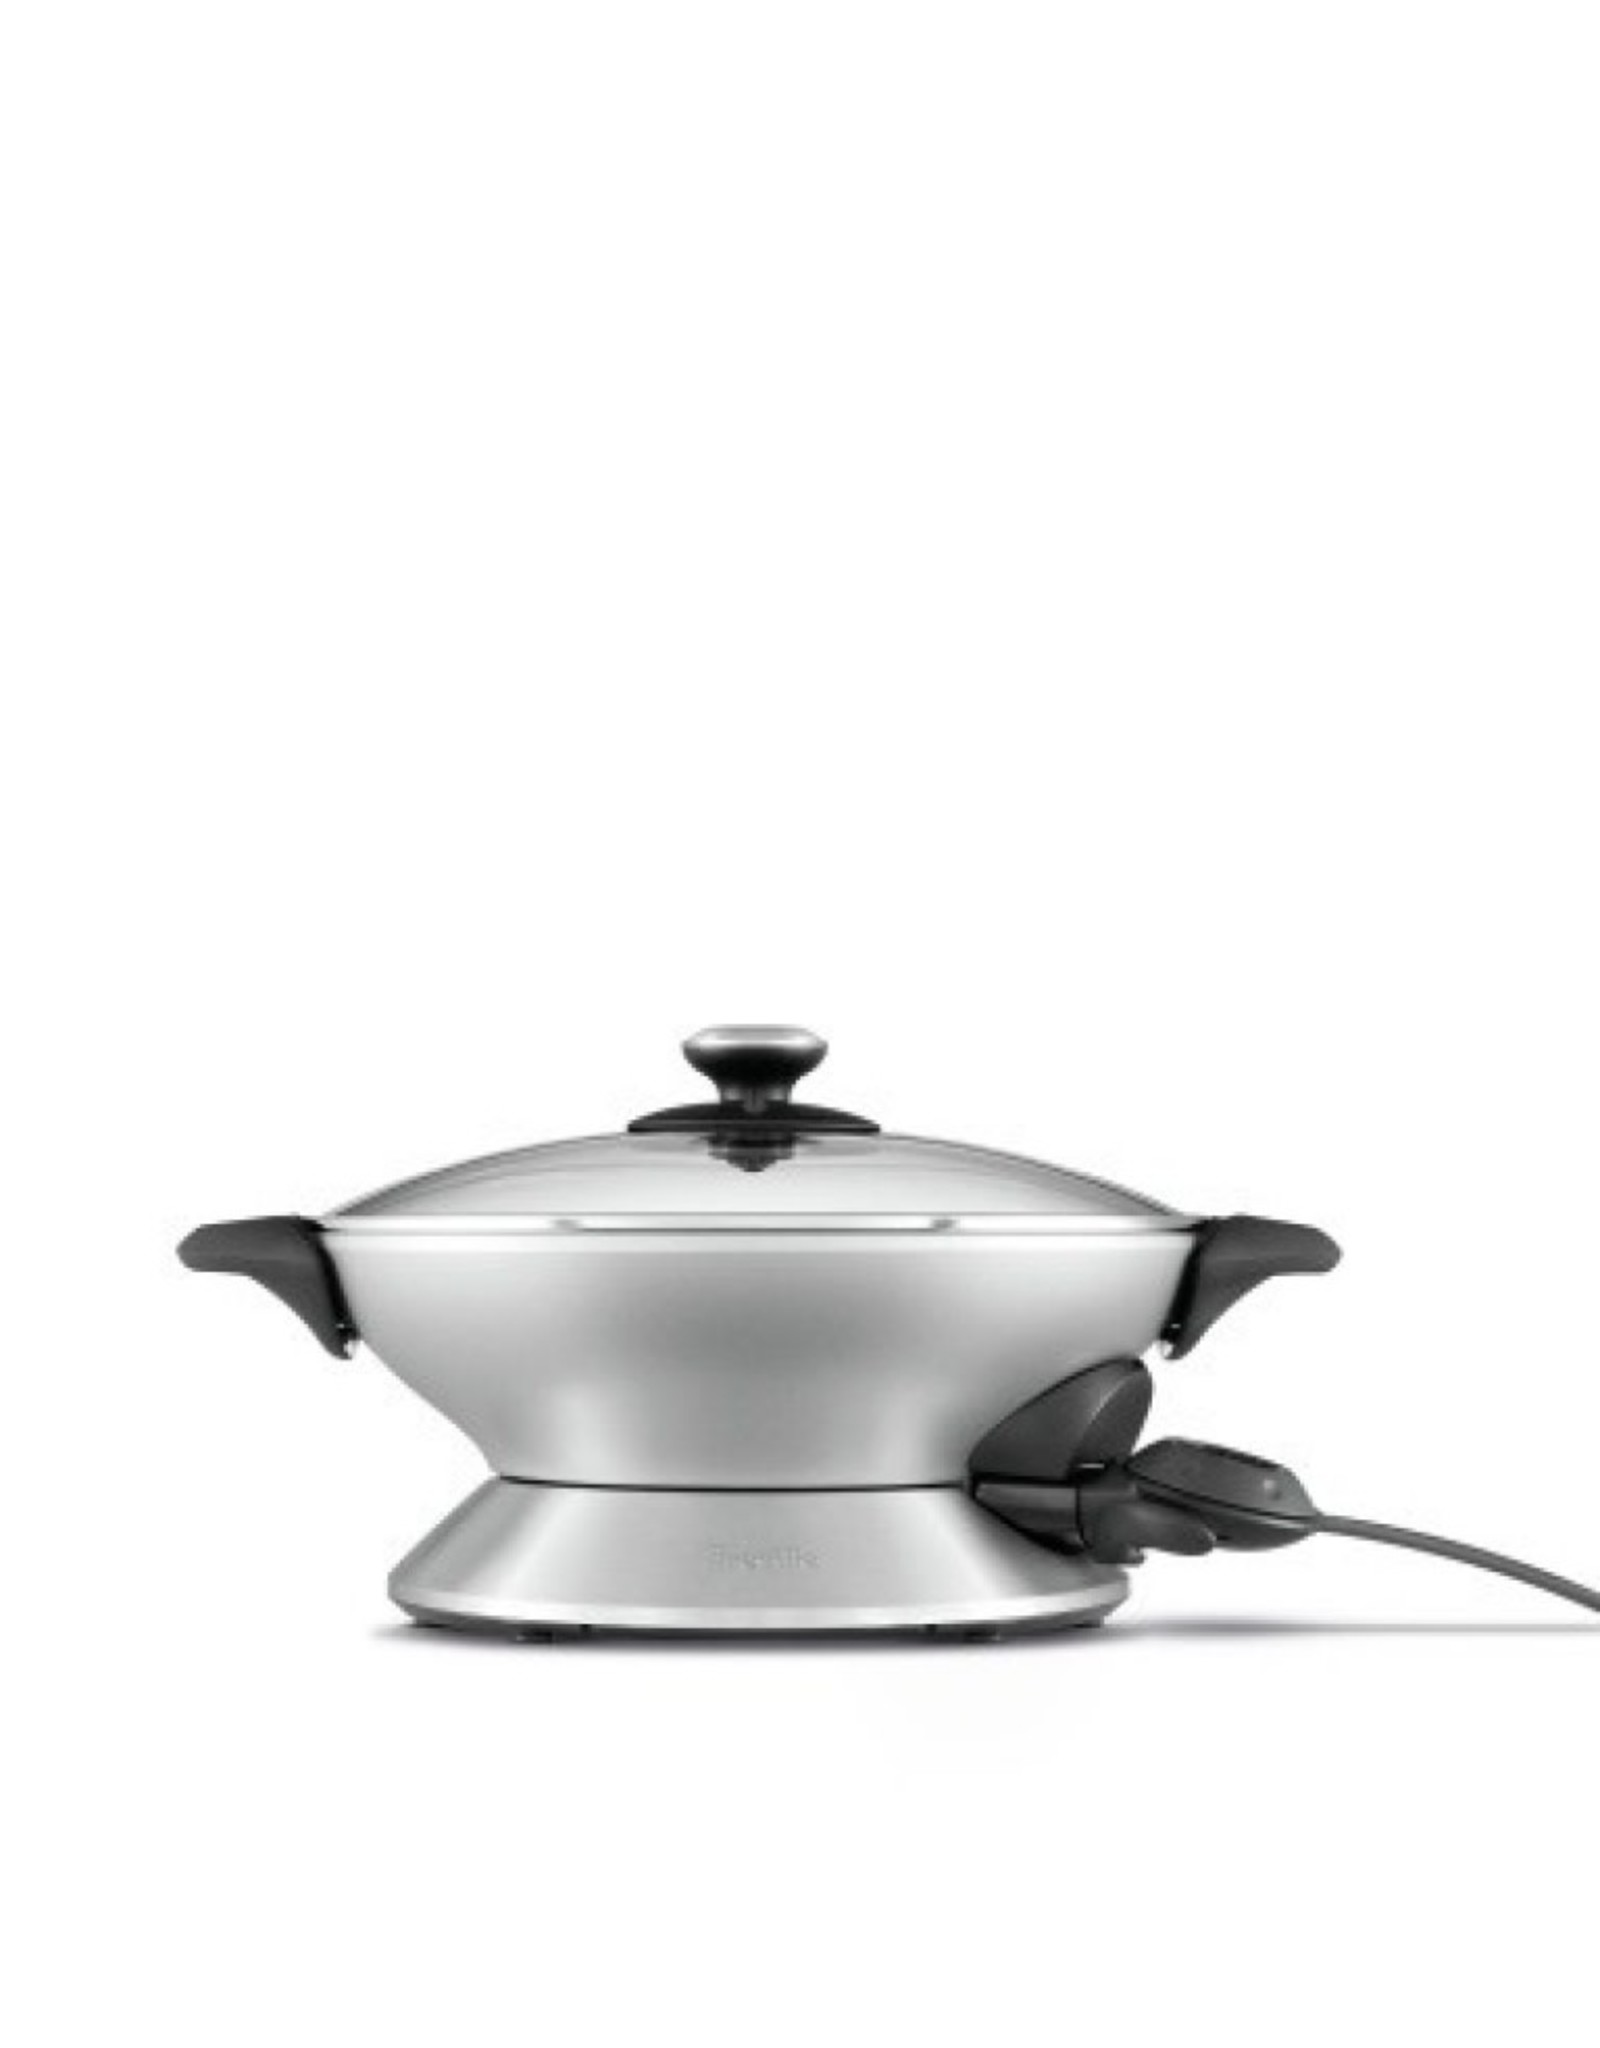 Breville Breville the Hot Wok - Electric